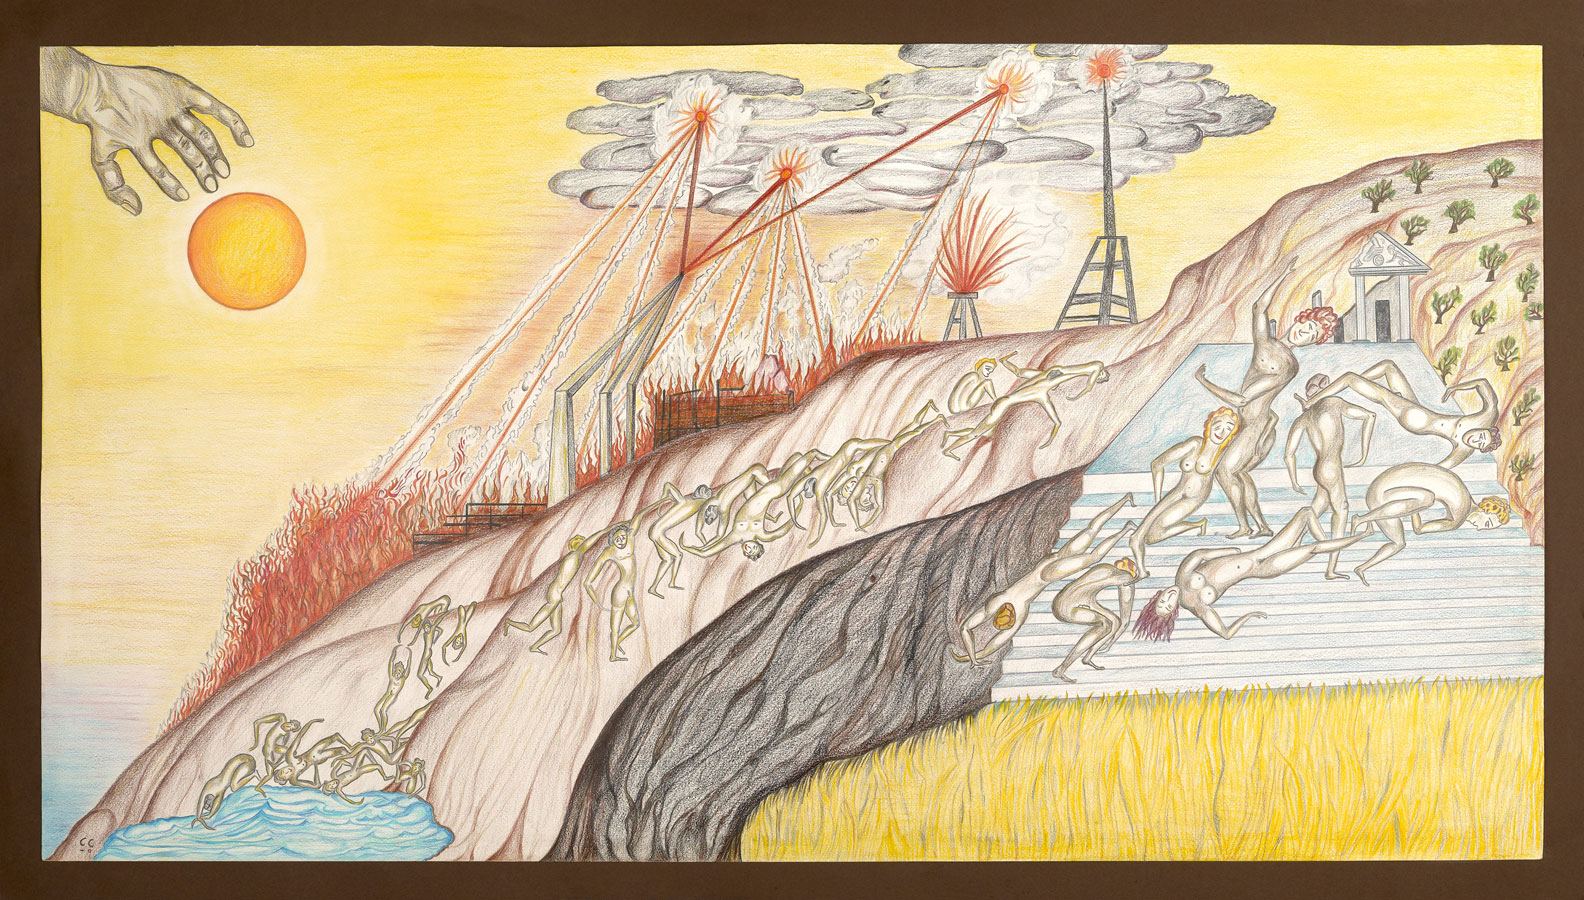 LA GUERRE CIVILE | 2006, crayons de couleurs, 116 x 66 cm | Photo Erwan Masson